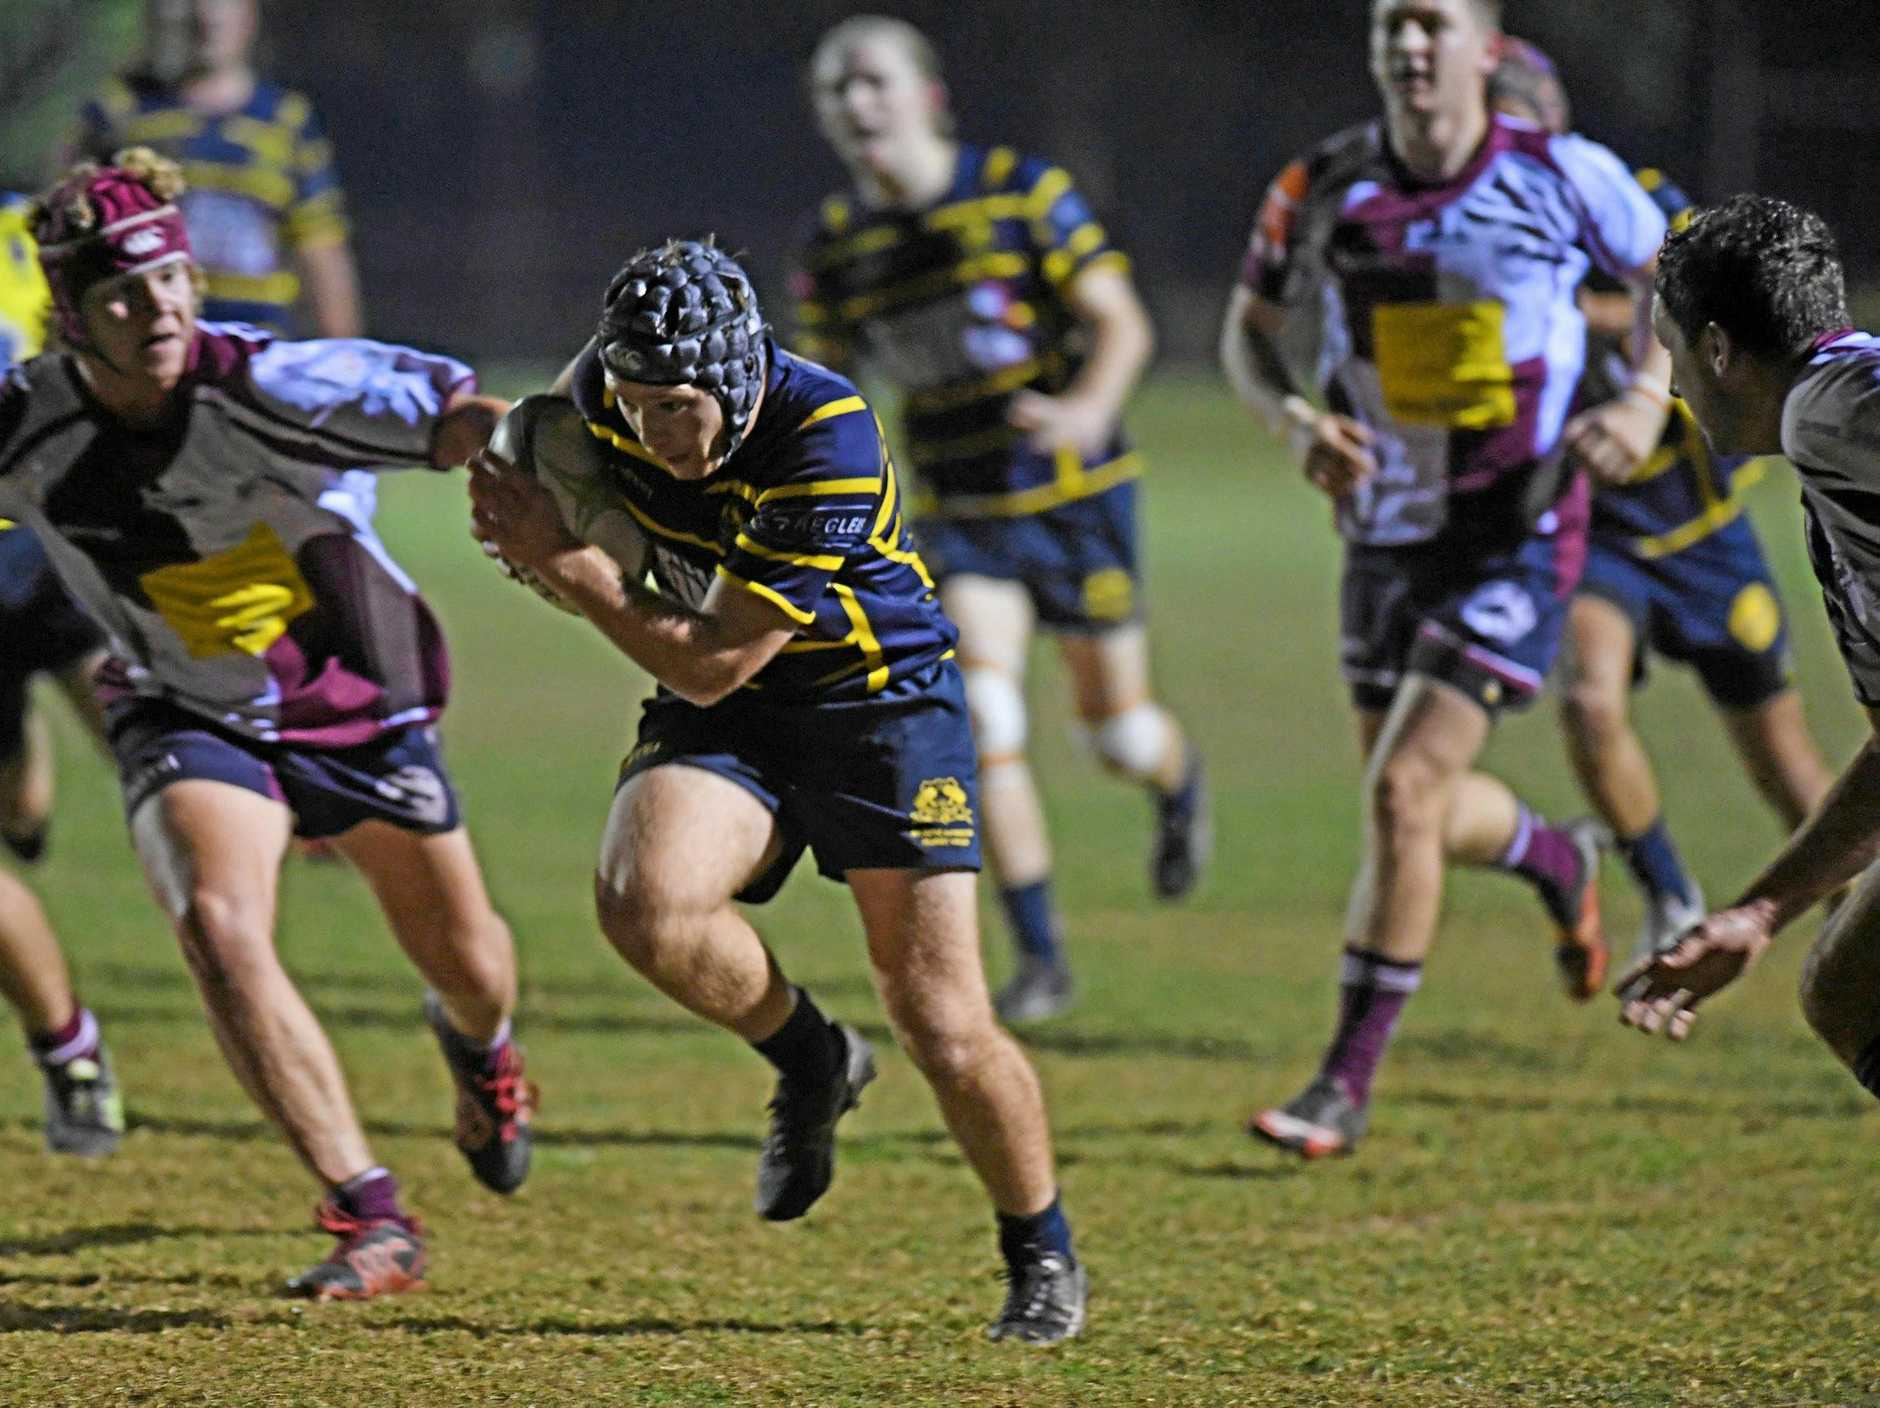 KEY MAN: Hammers' fullback Owen Dugdale was one of the stand-outs for the home side as they proved too strong for the Noosa Dolphins on Friday.